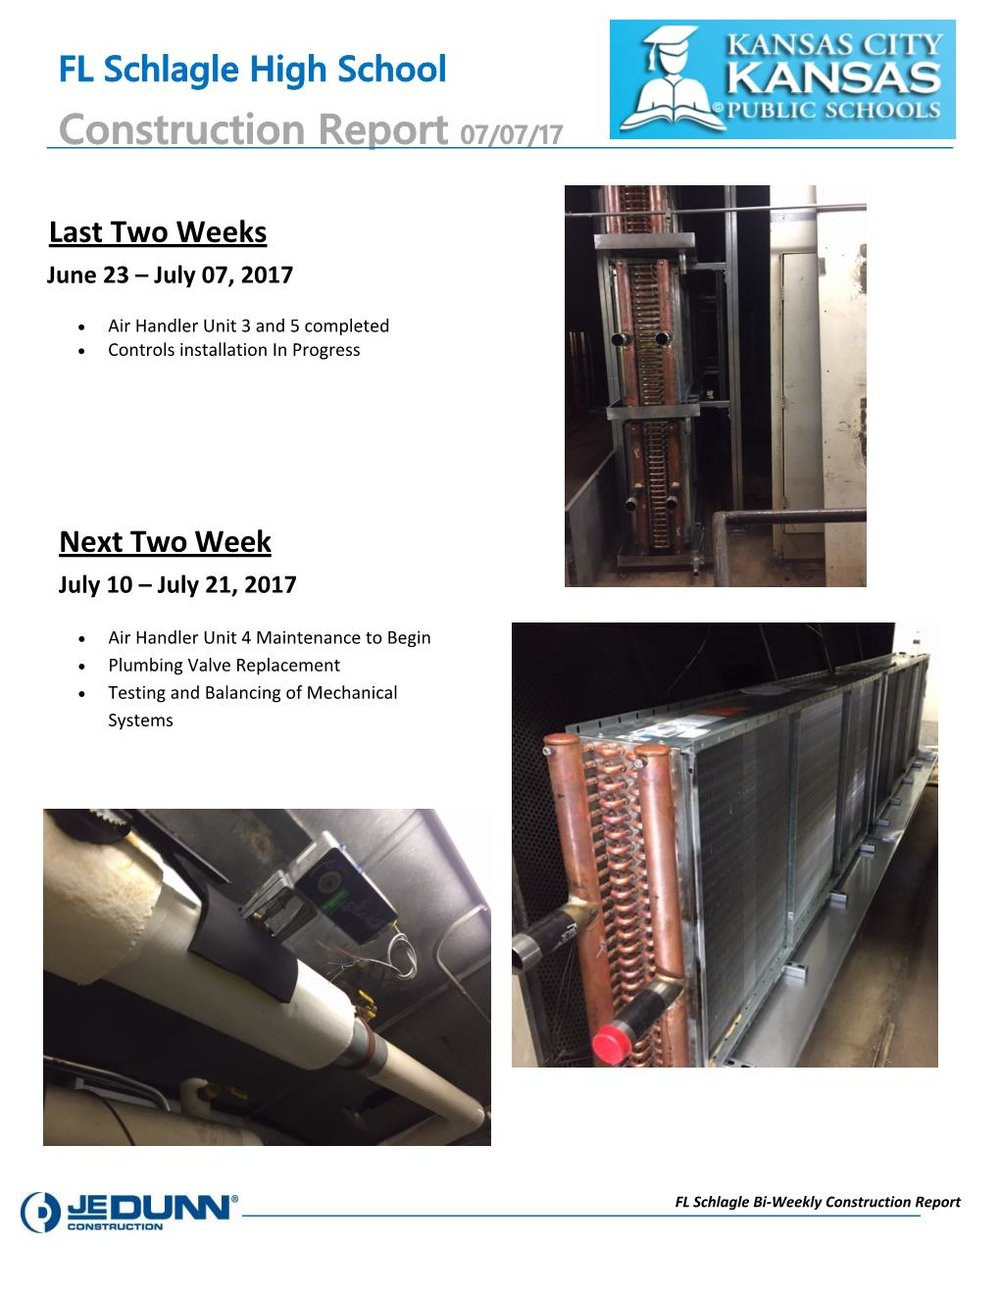 FL Schlagle Construction Report 07.07.17.jpg